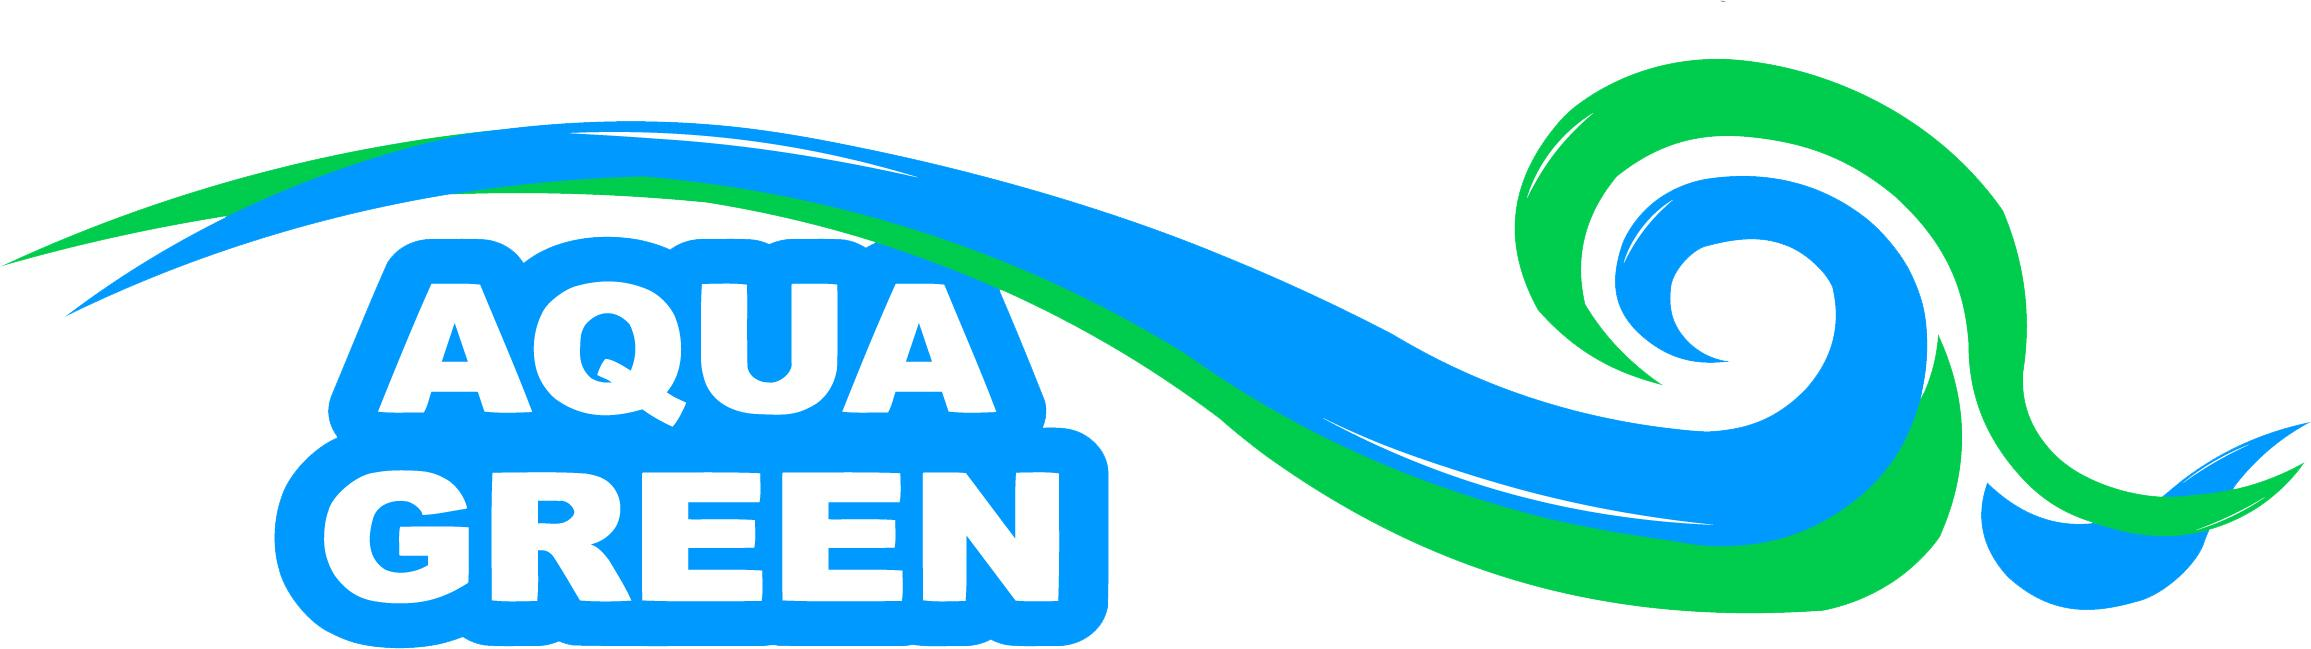 aquagreen logo_24